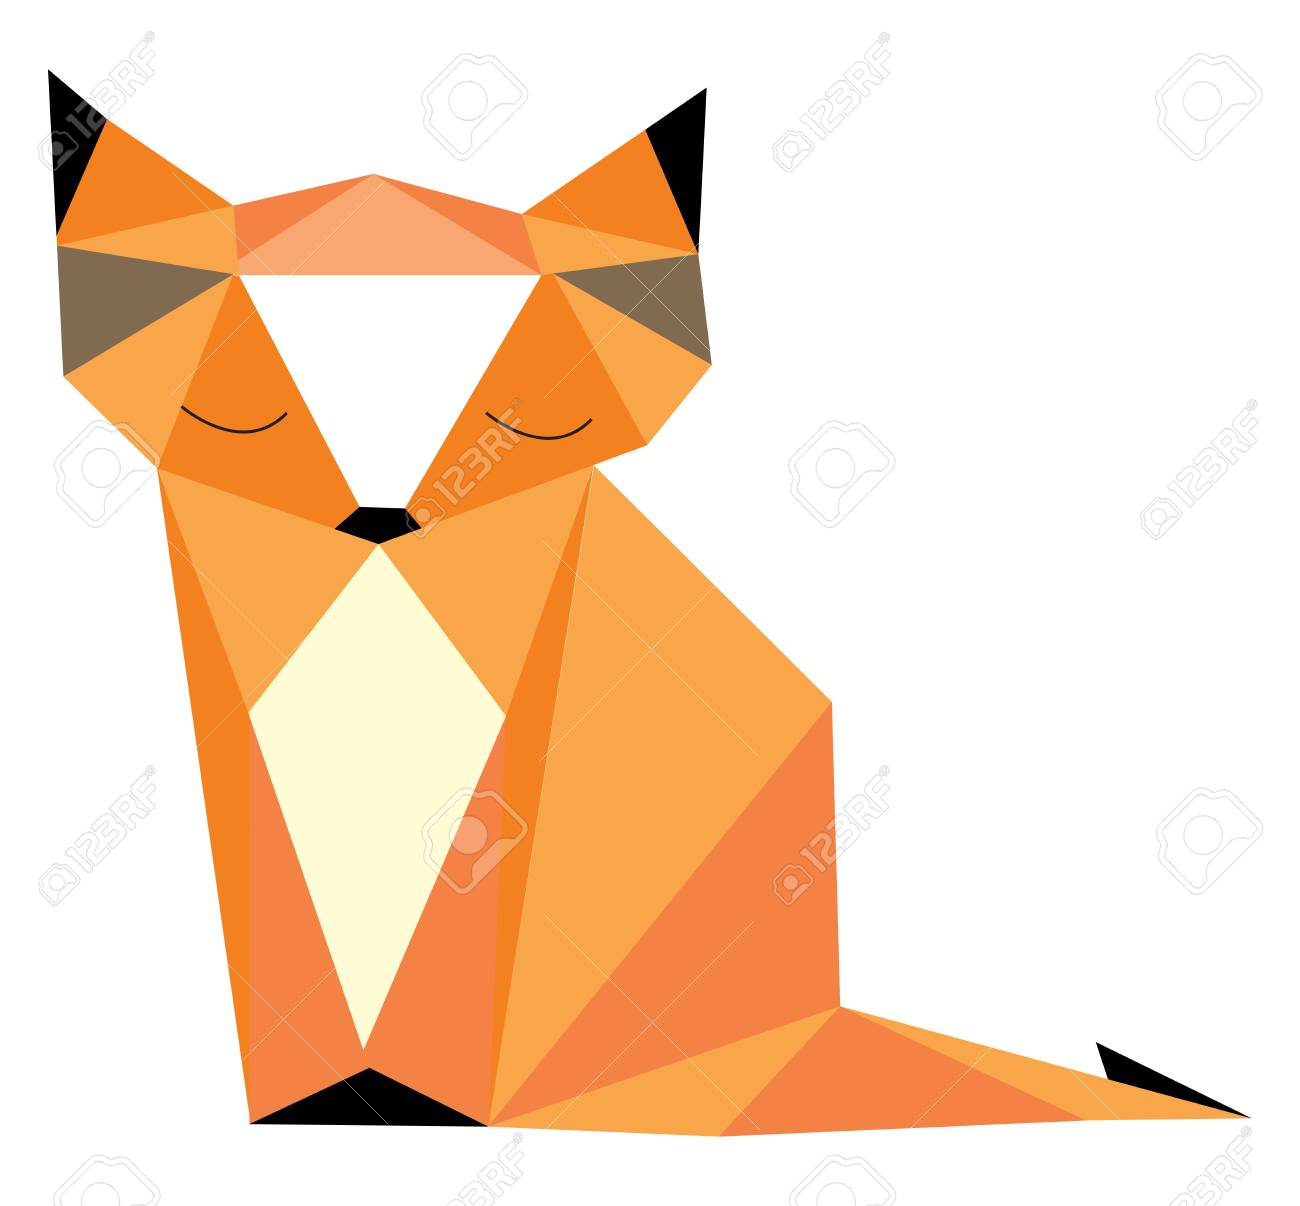 A picture of fox made out of geometrical shapes using whiteorangeblack